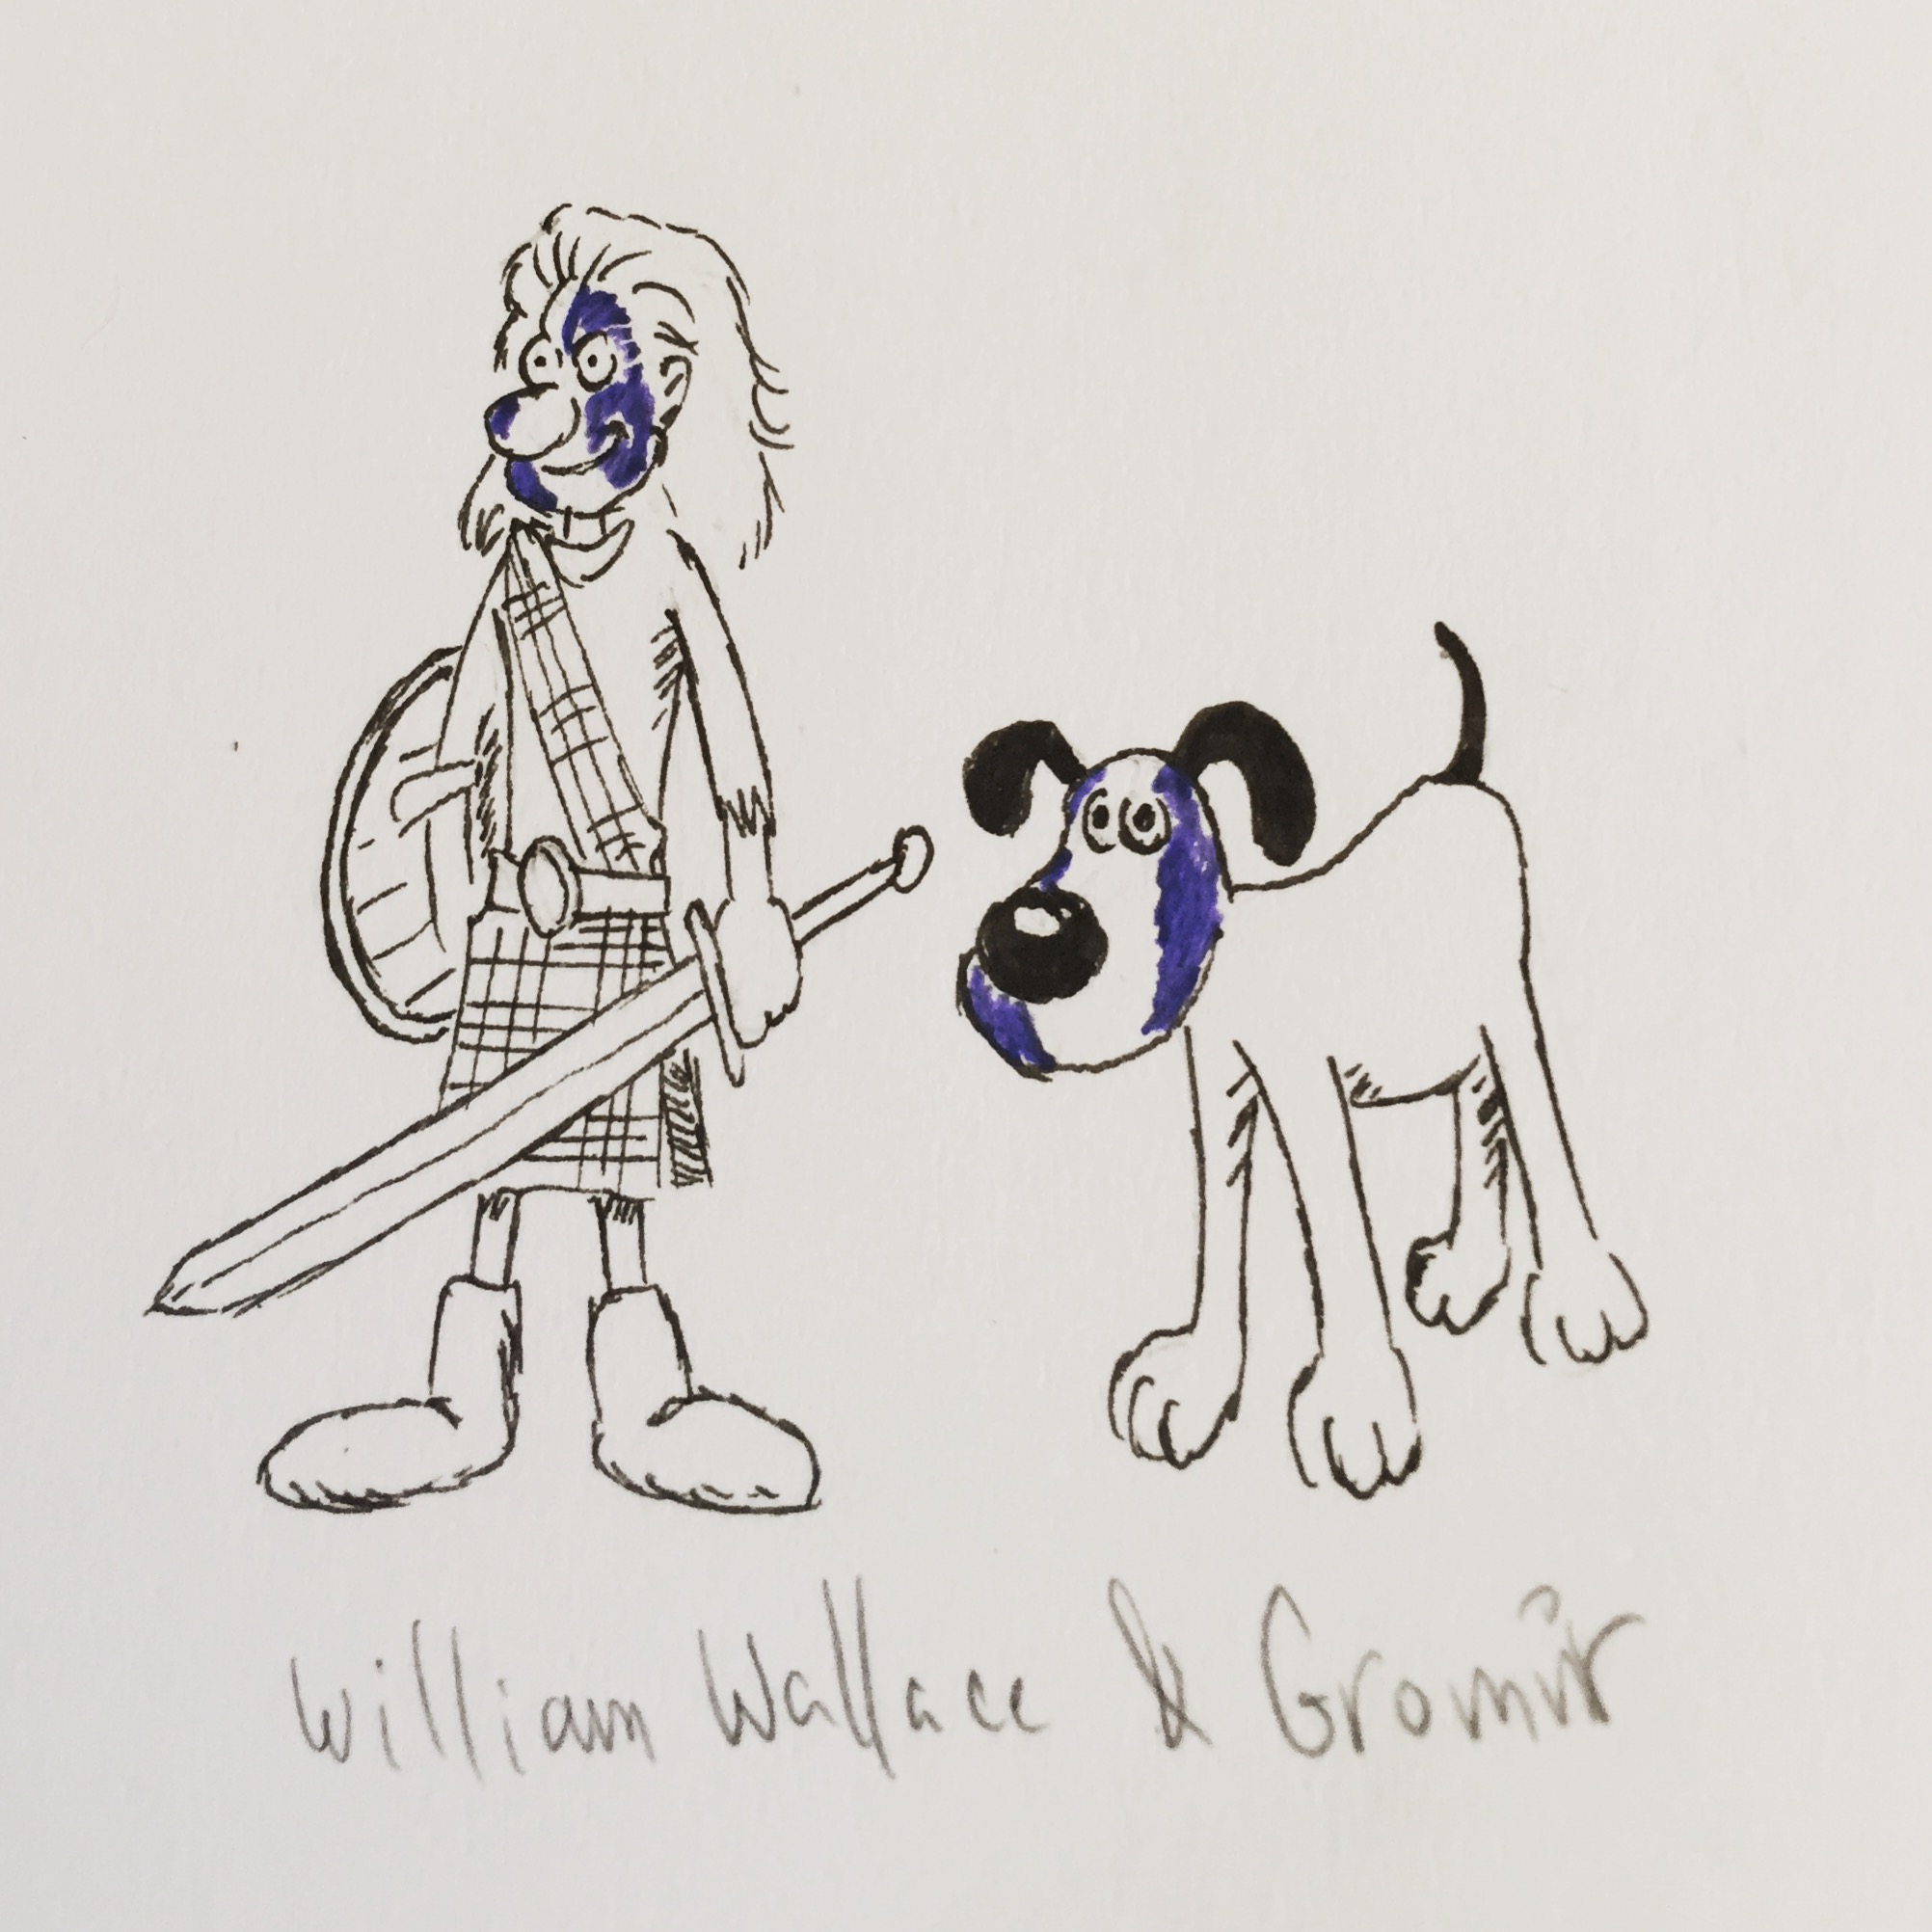 William Wallace & Gromit